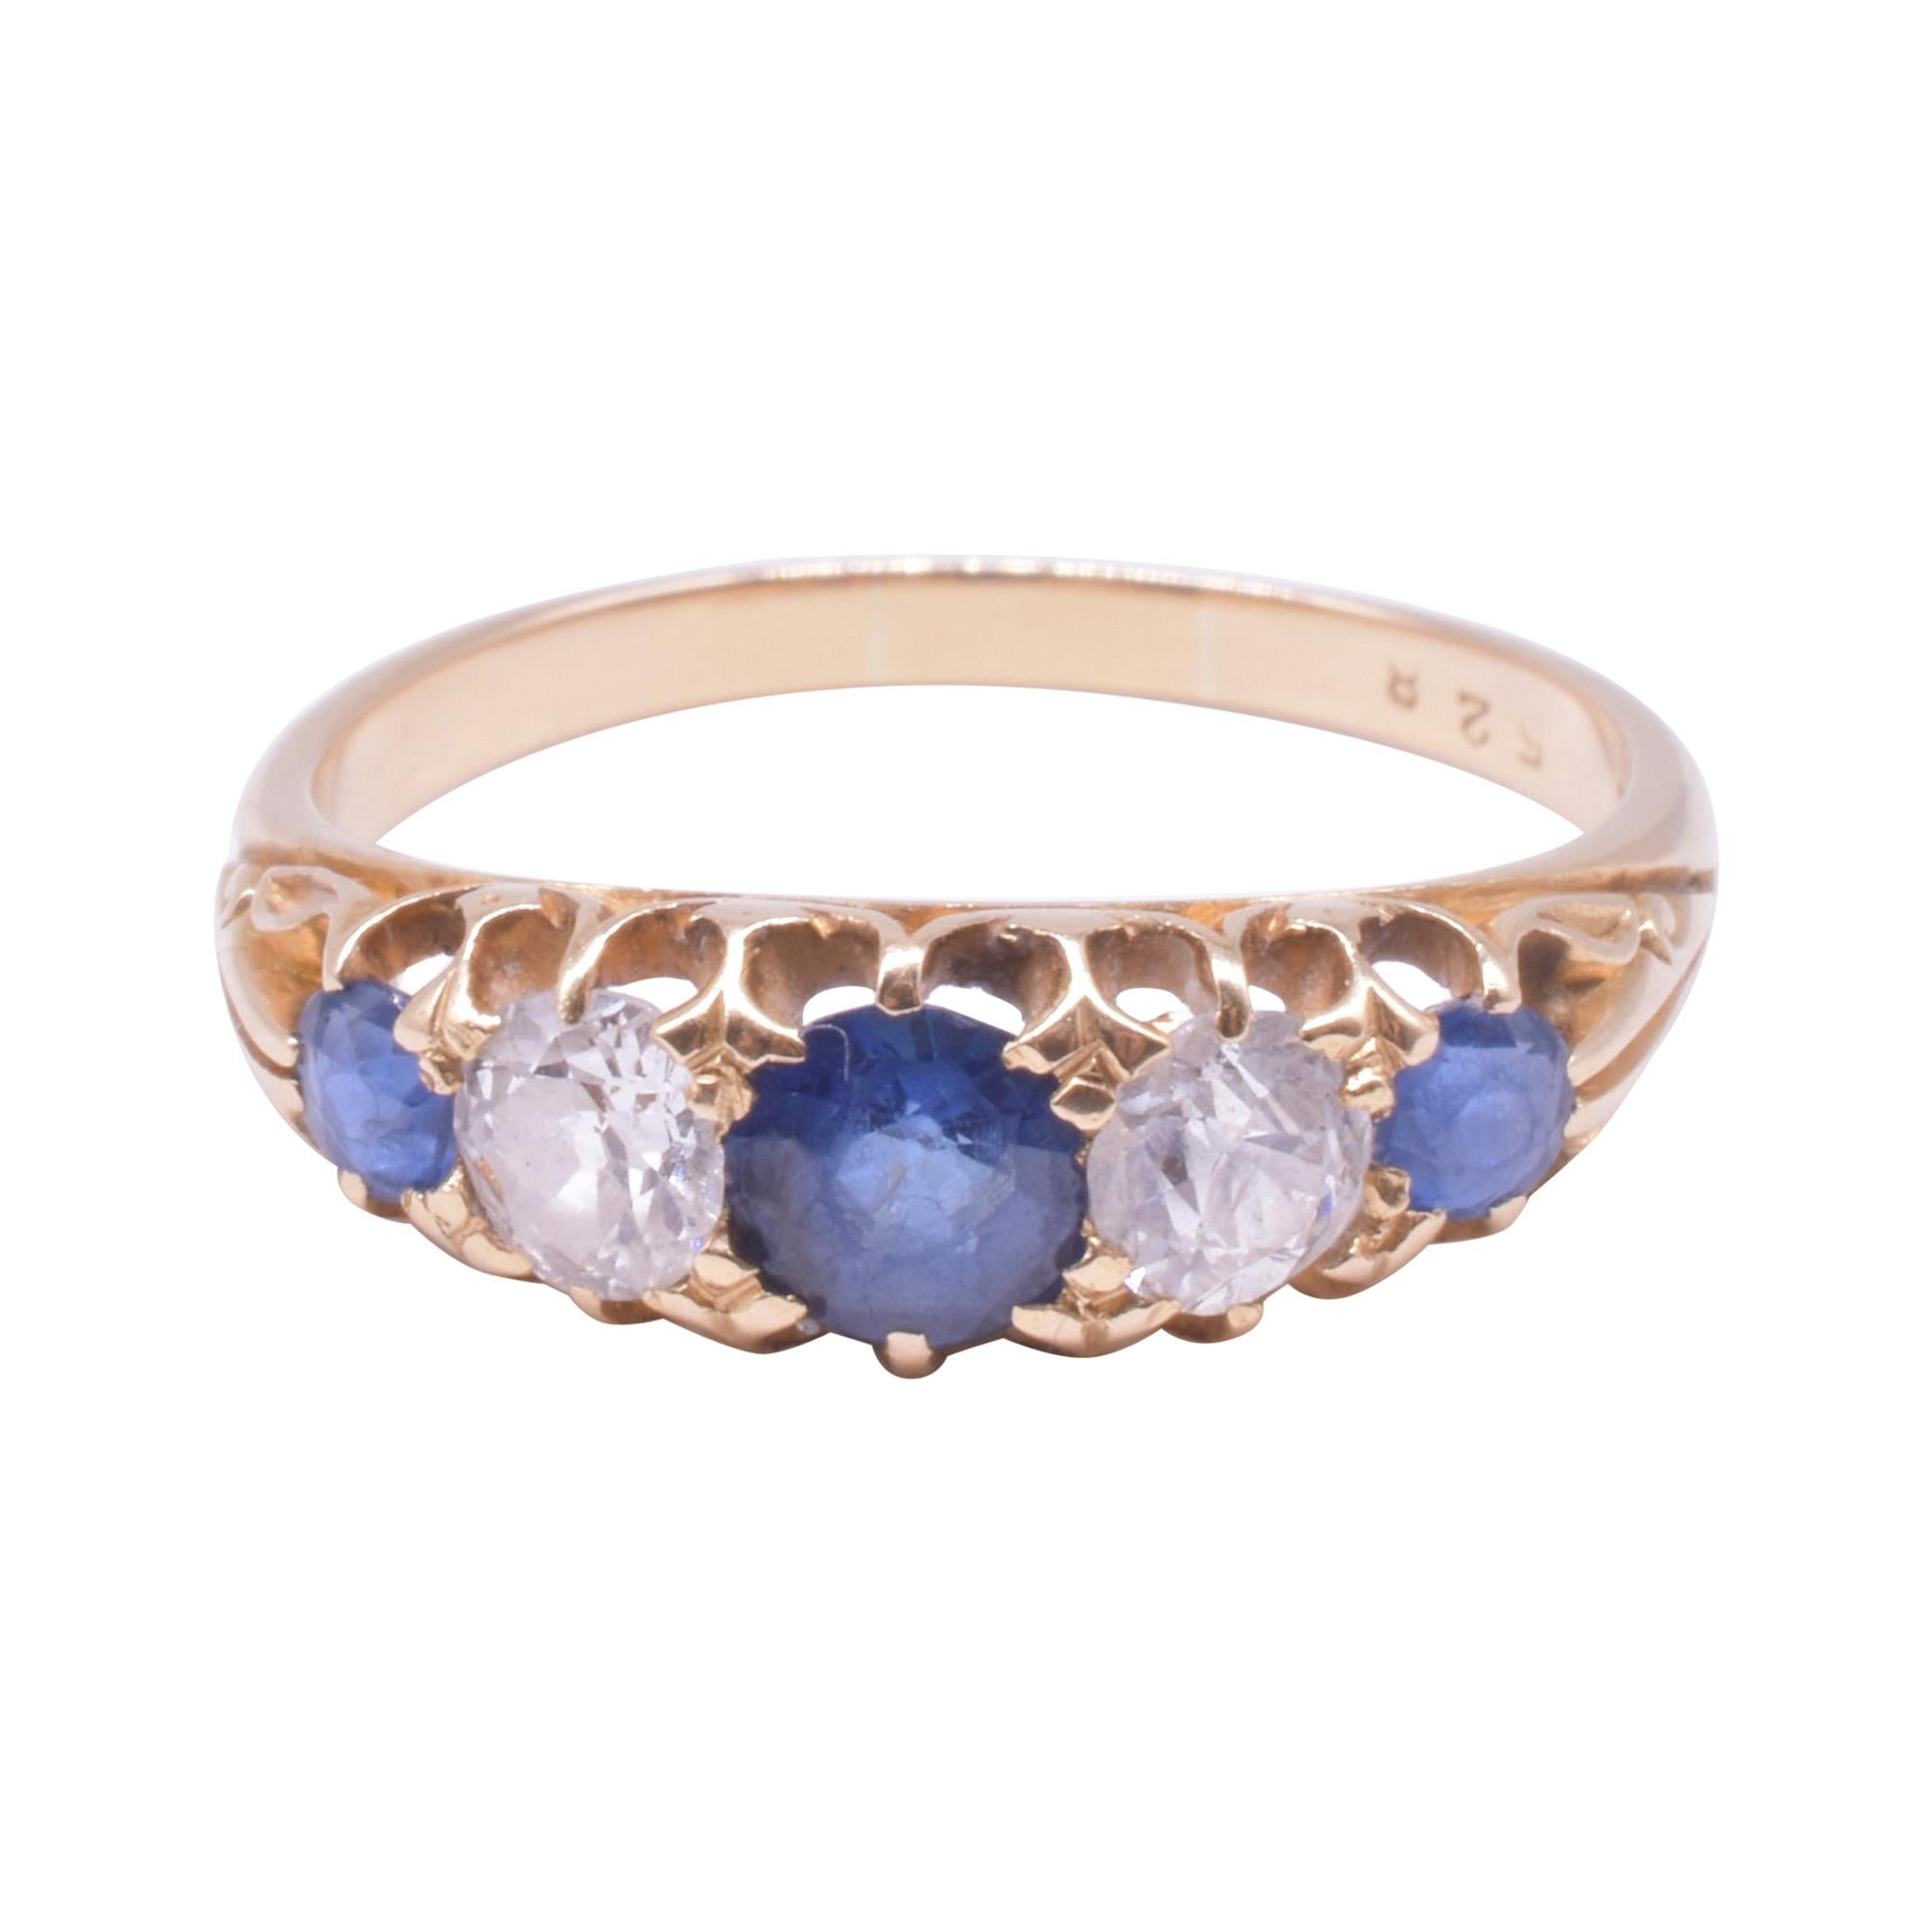 Victorian Half Hoop Five Stone Ring of 3 Sapphires and 2 Diamonds